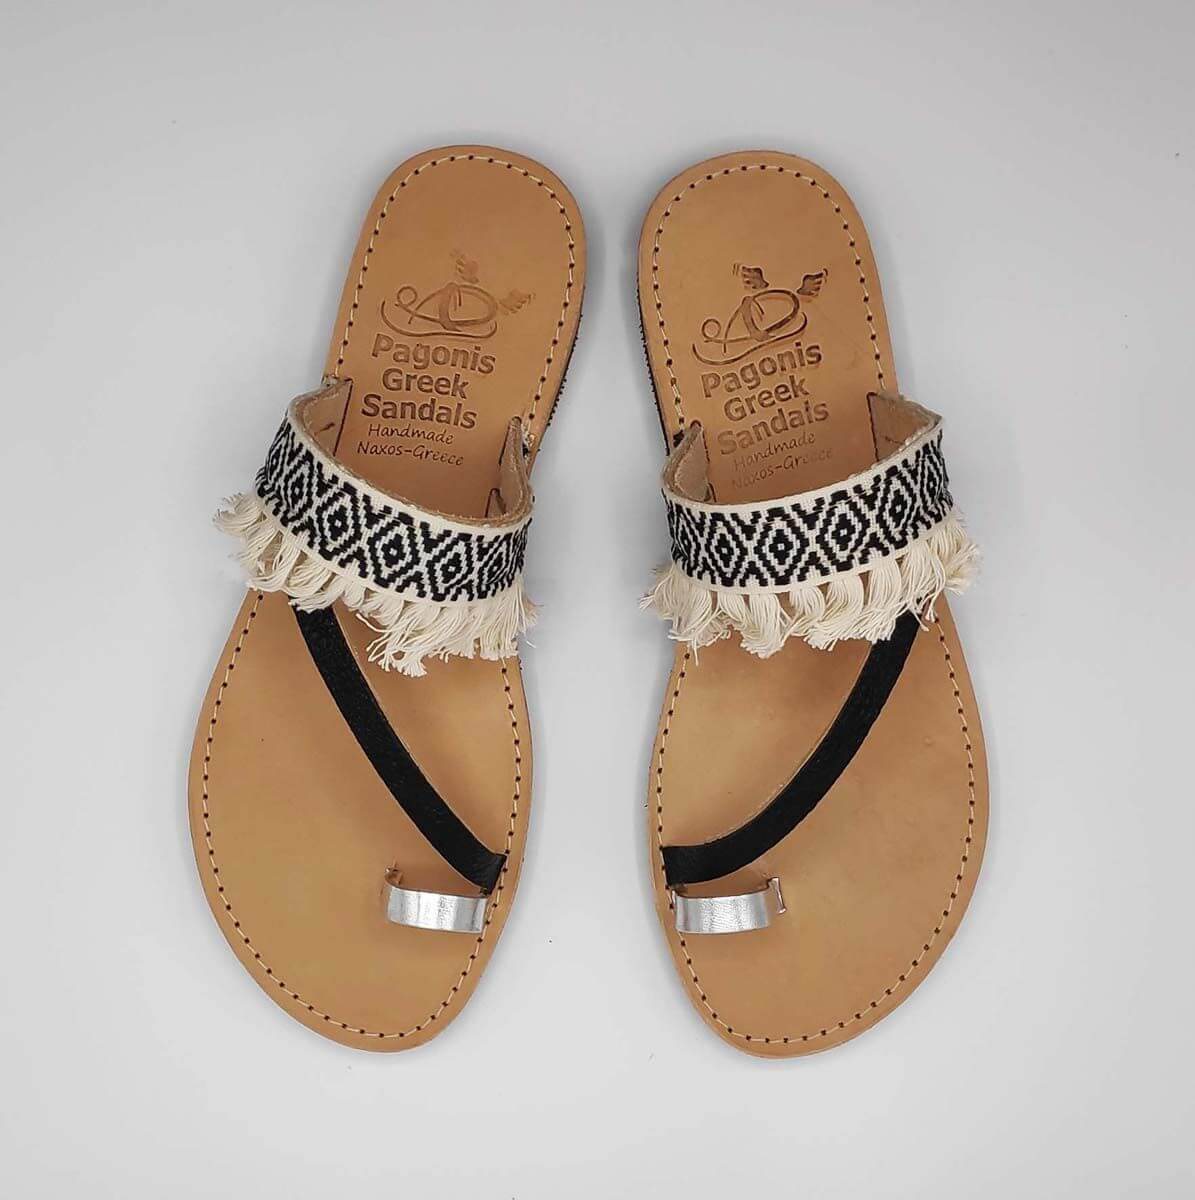 vBlack & White Fabric & Leather Boho Sandals with Fringes | Comi Boho | Pagonis Greek Sandals